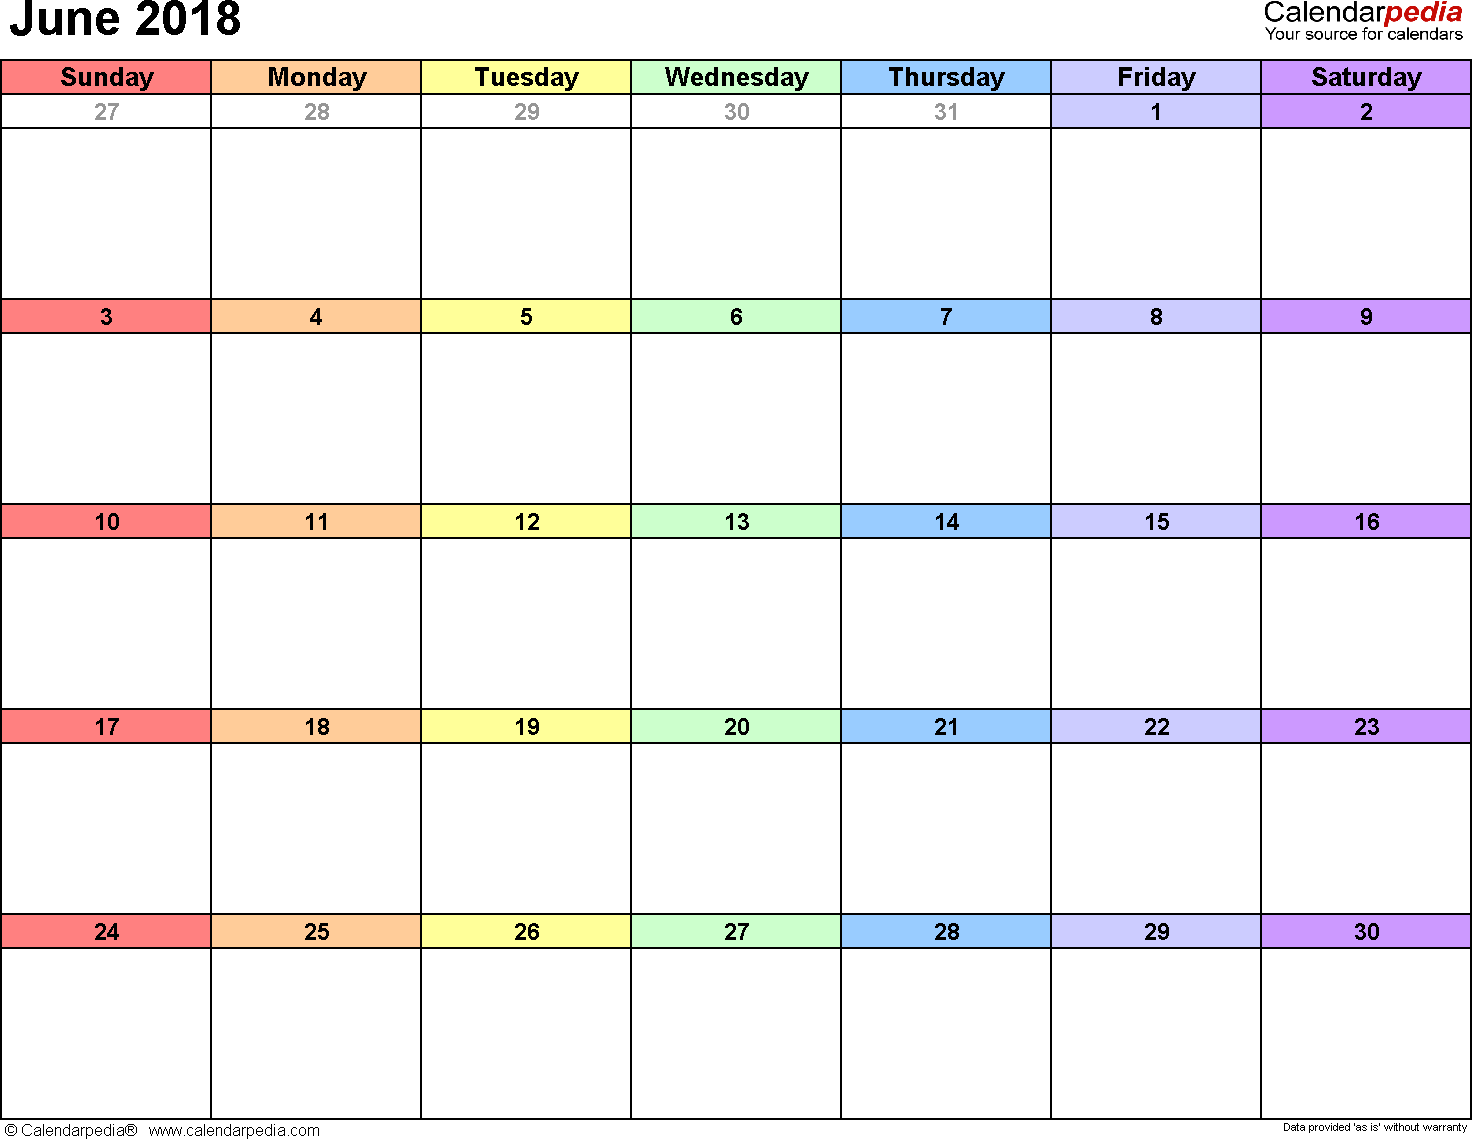 june 2018 calendar free download